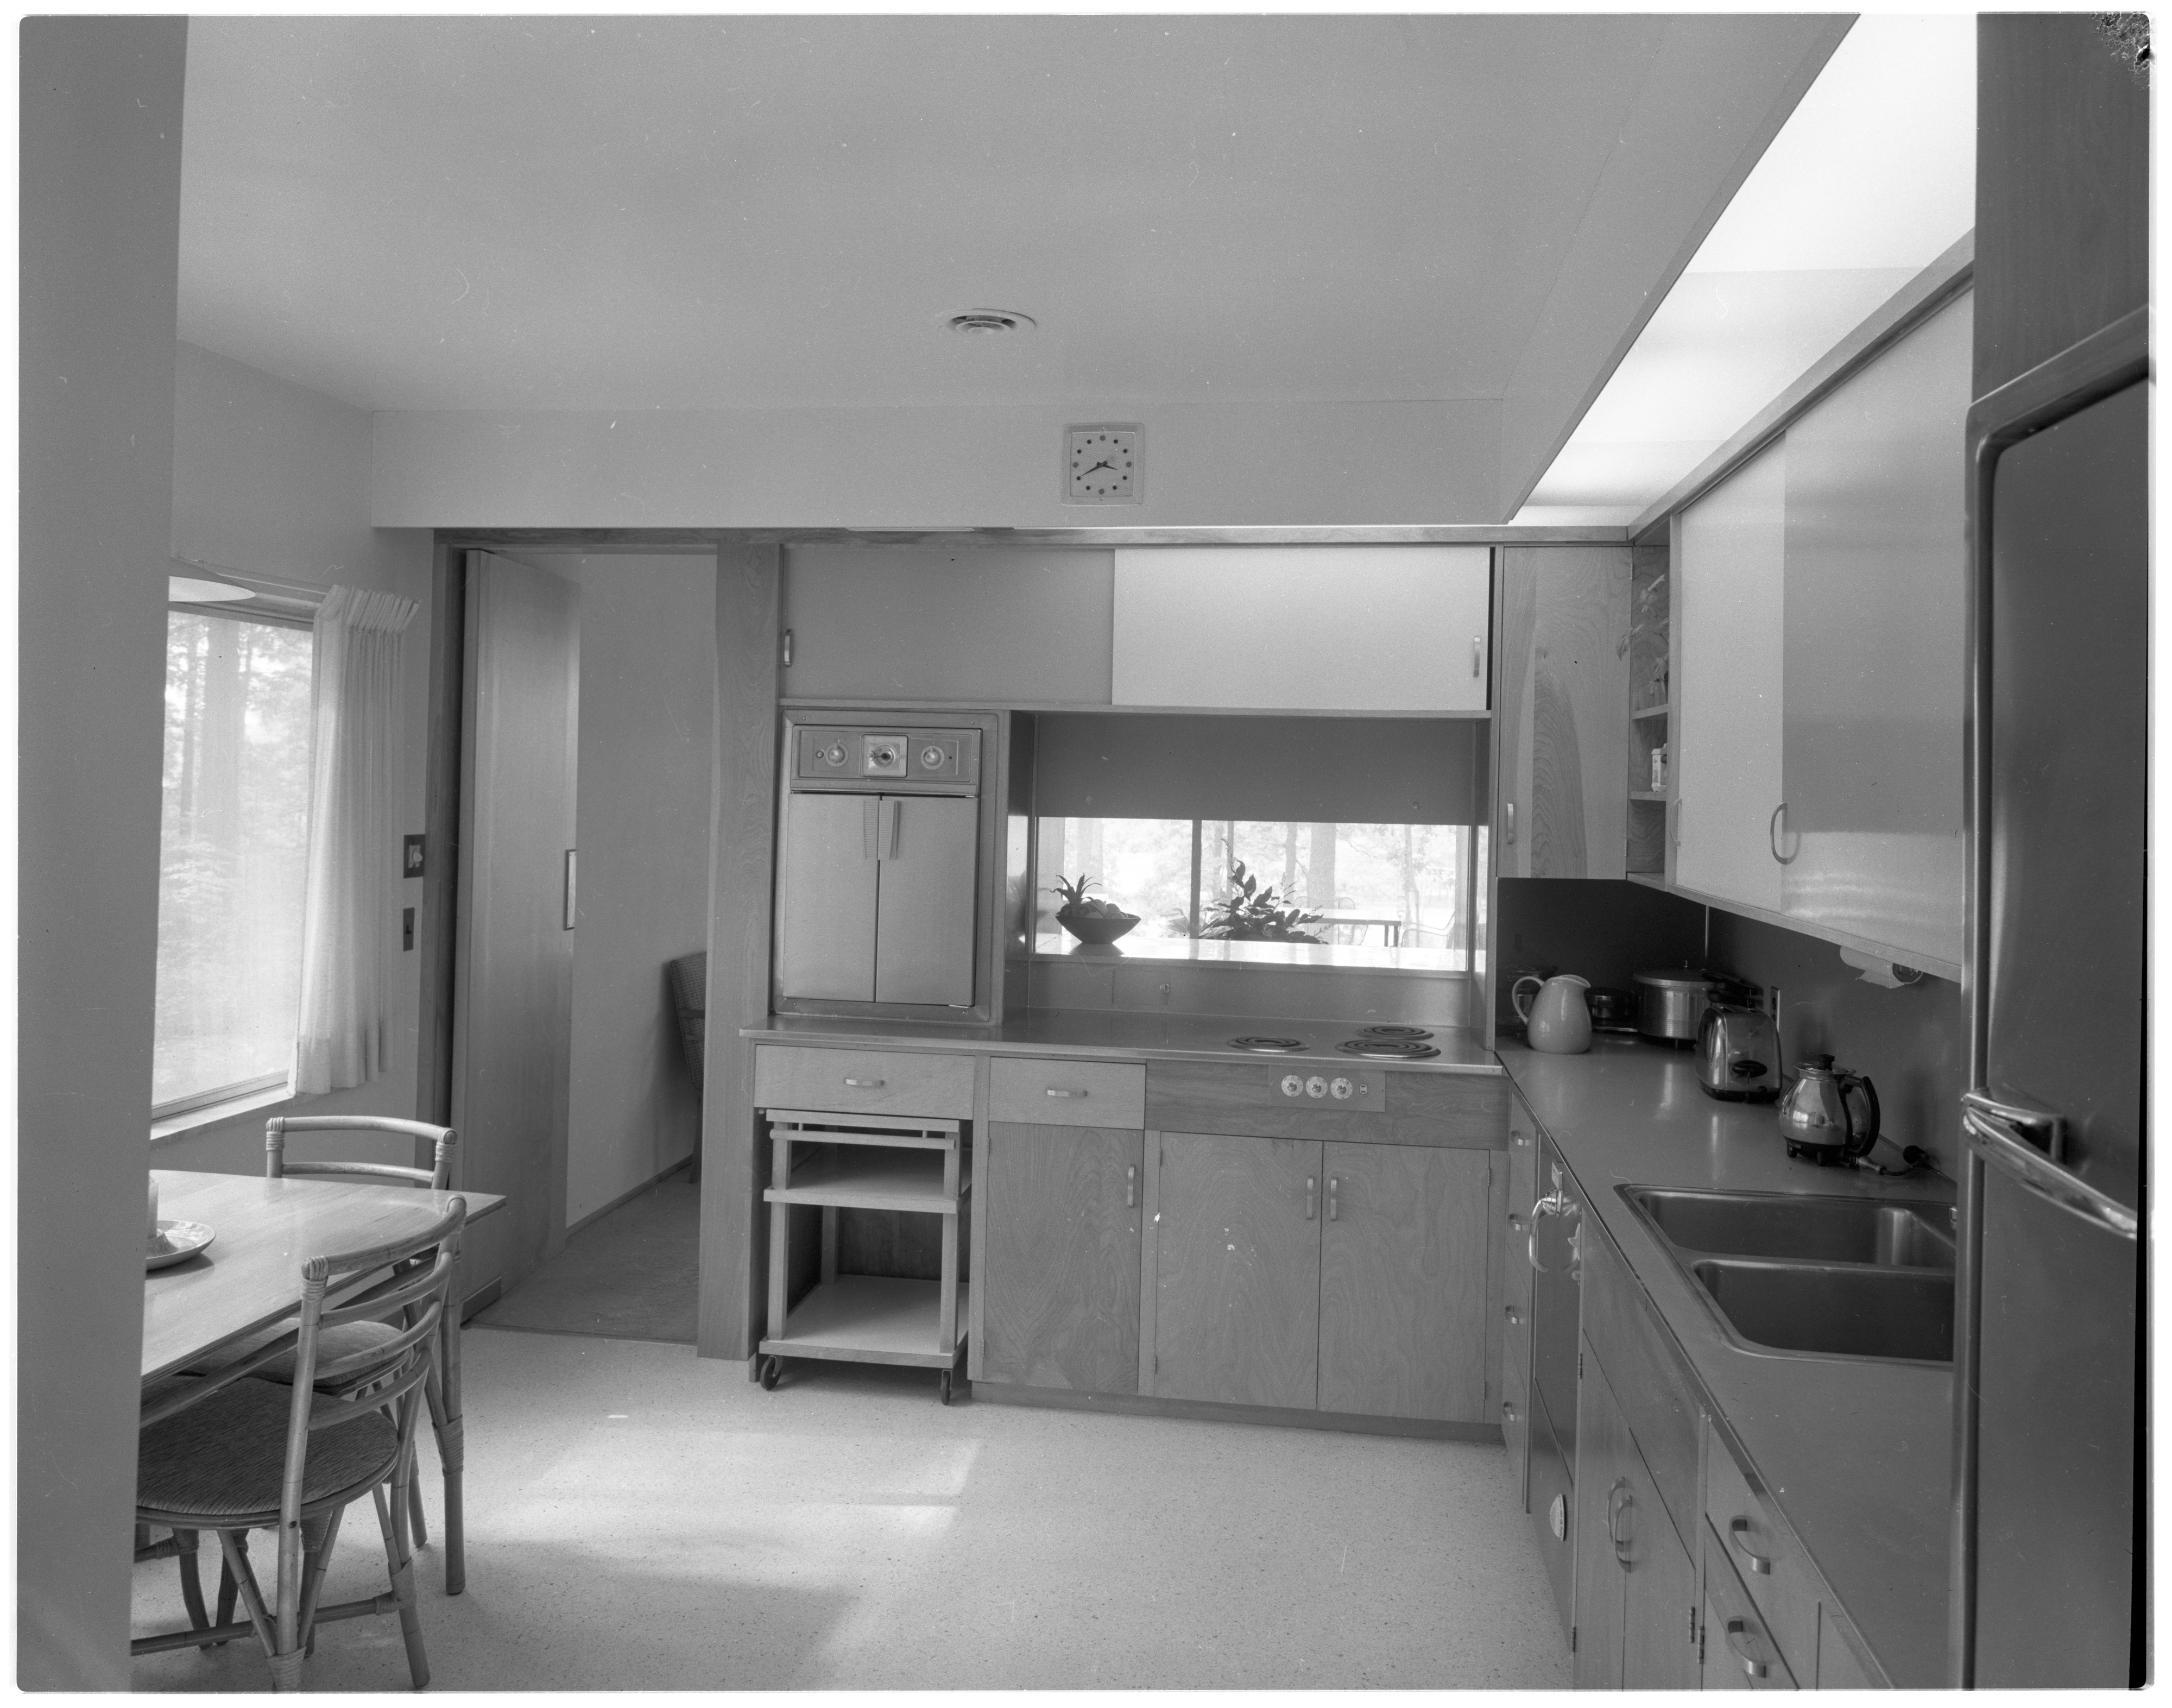 Kitchen Includes Dining Area In Moore Home, June 1958 image